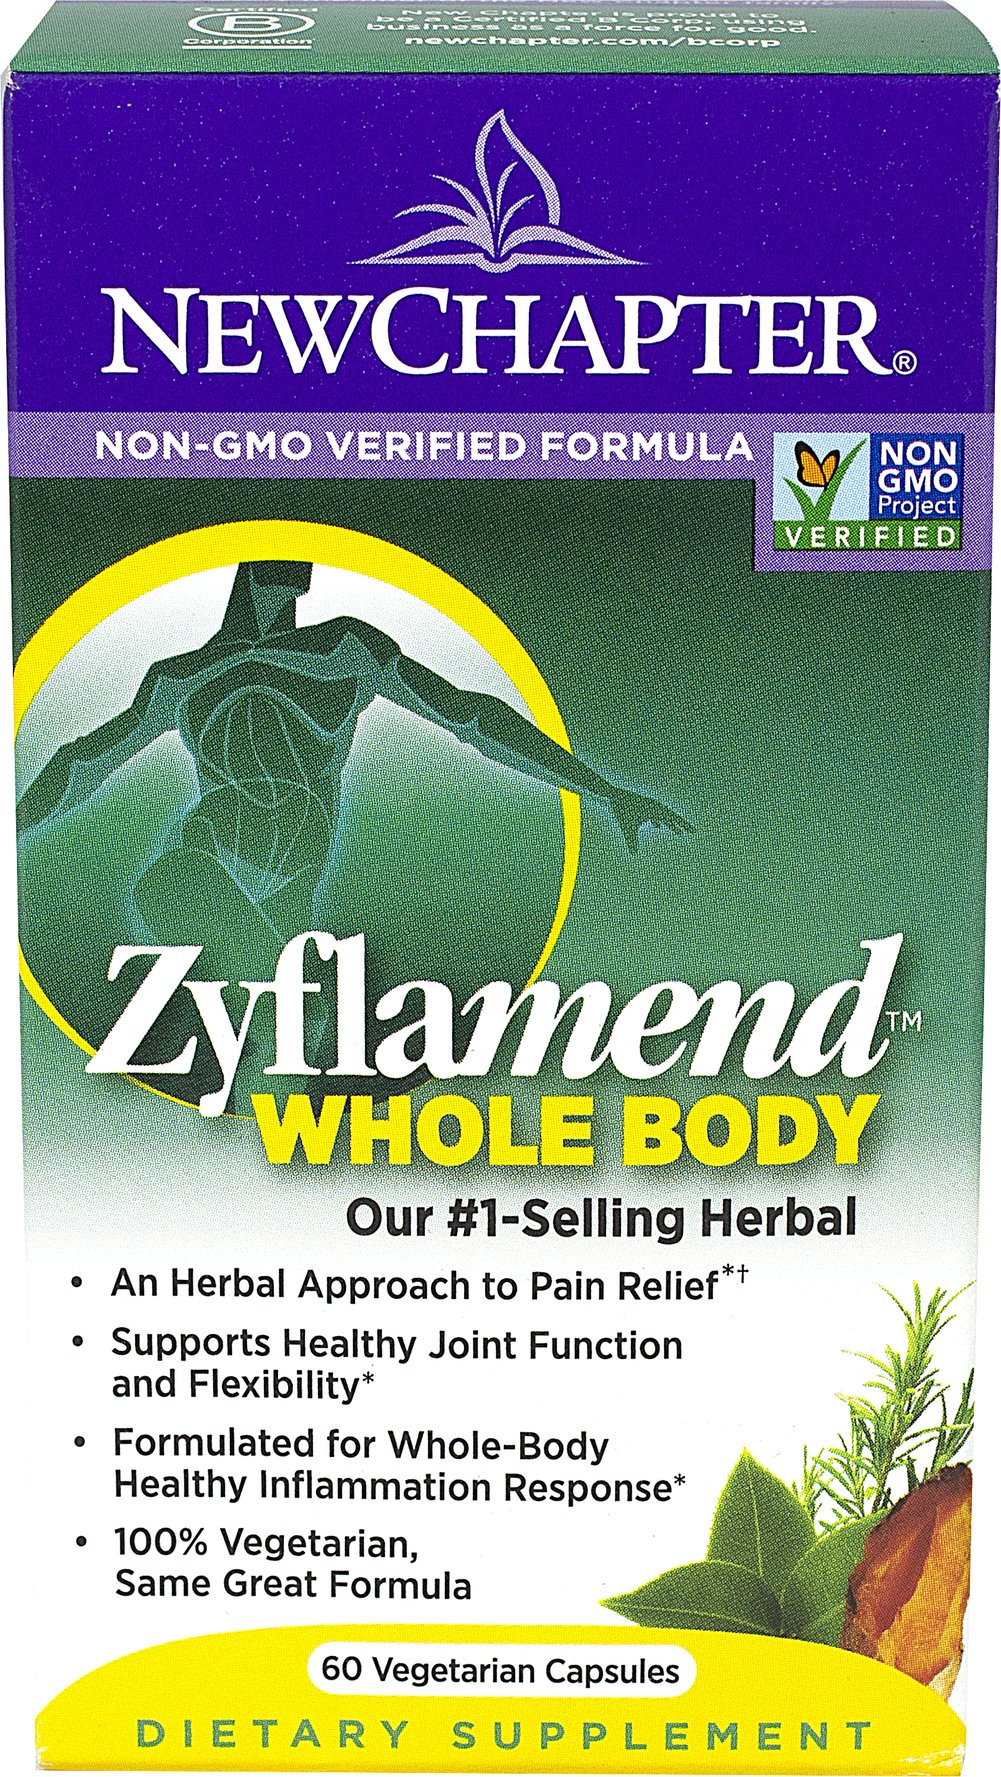 Zyflamend® <p><strong>From the Manufacturer's Label: </strong></p><p></p>Non-GMO Verified Formula<br /><br />The multi-herbal that may be as important as your daily multivitamin, Zyflamend delivers a multitude of naturally occurring compounds. Zyflamend delivers the full-spectrum of whole herbs in their natural profiles, not isolated compounds. Whole-food antioxidants, including Ginger, Turmeric, Green Tea and Rosemary, help quench free ra